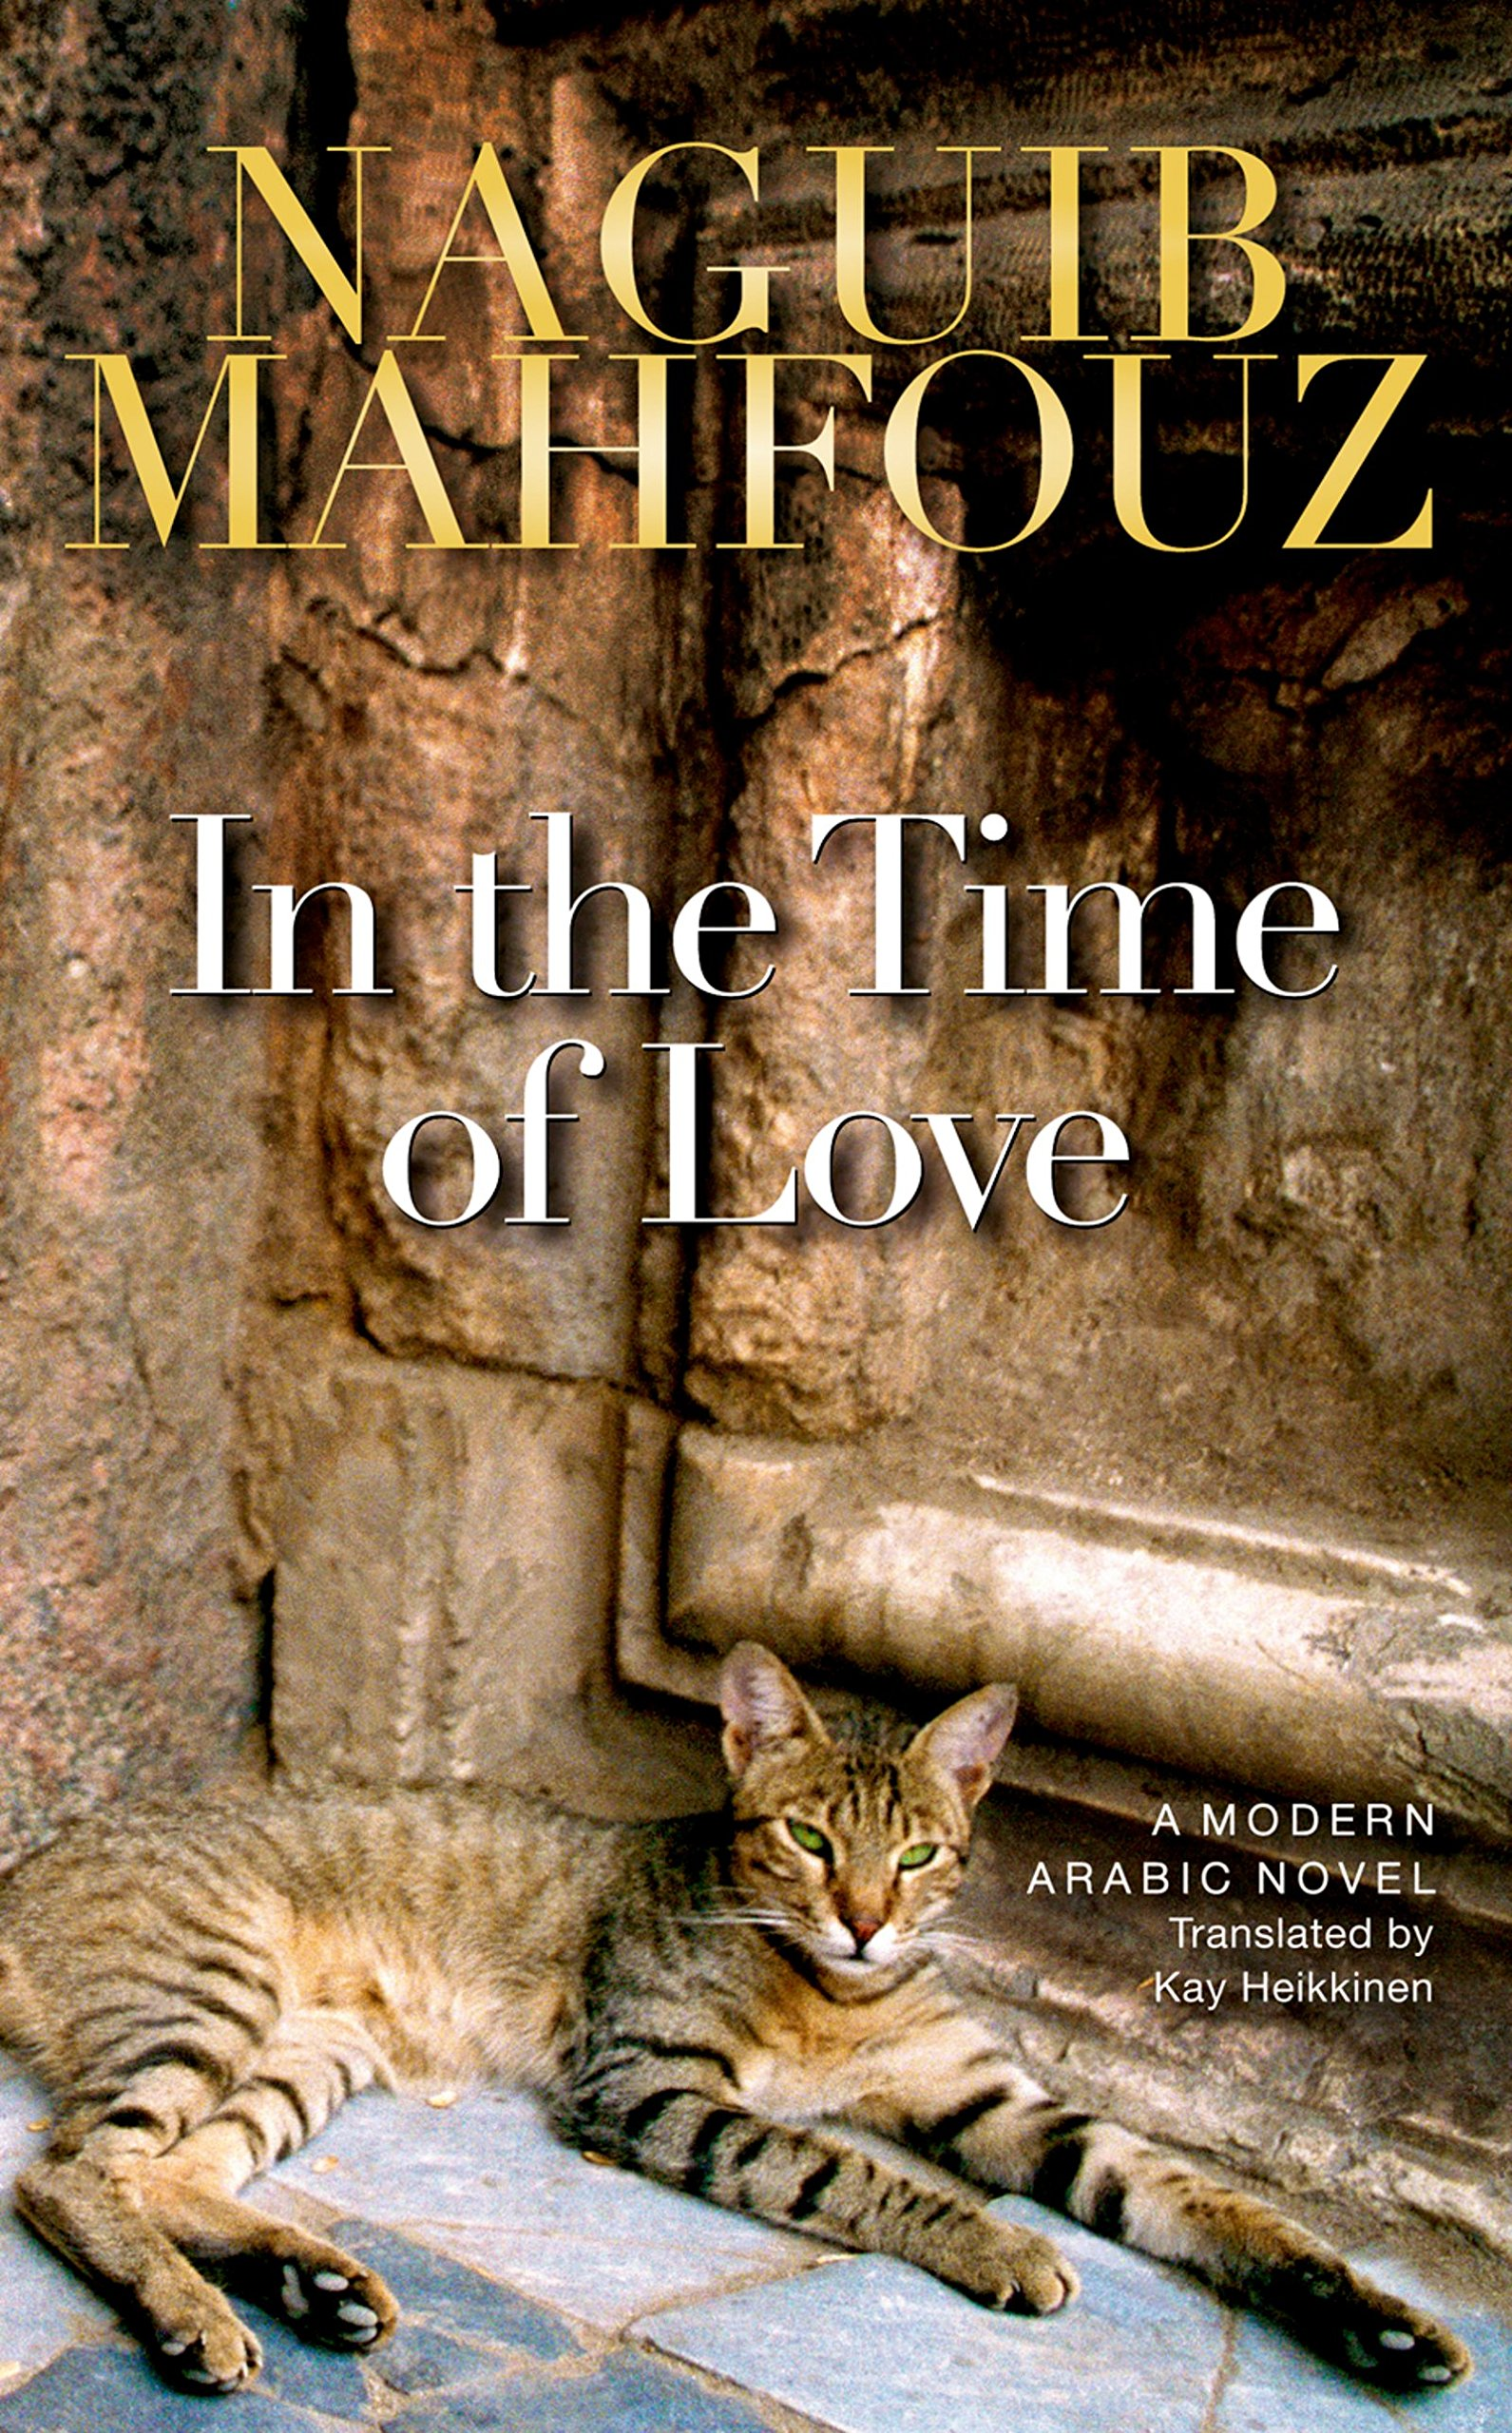 In the Time of Love: A Modern Arabic Novel: Naguib Mahfouz